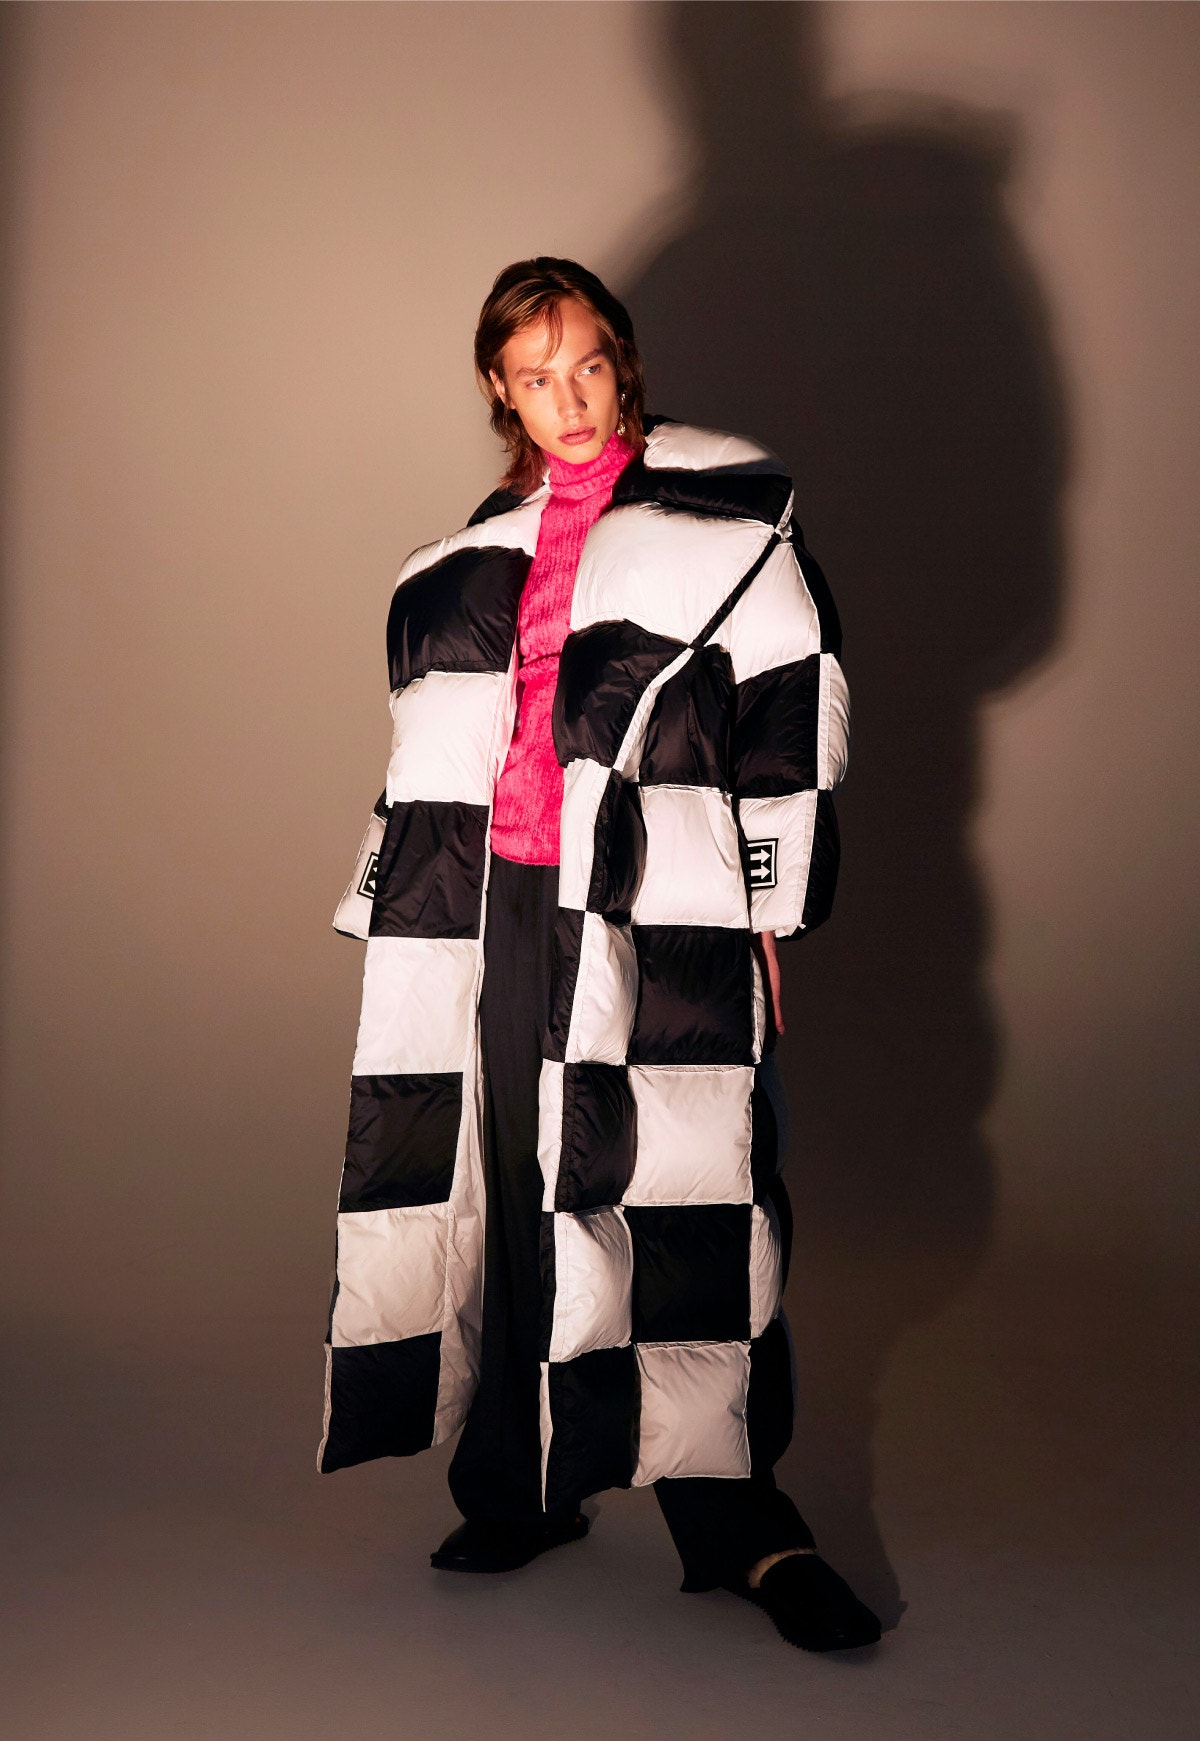 OFF-WHITE 3D Large Checkered Puffer – SIES MARJAN Pink Ribbed Top – MAGDA BUTRYM Earrings